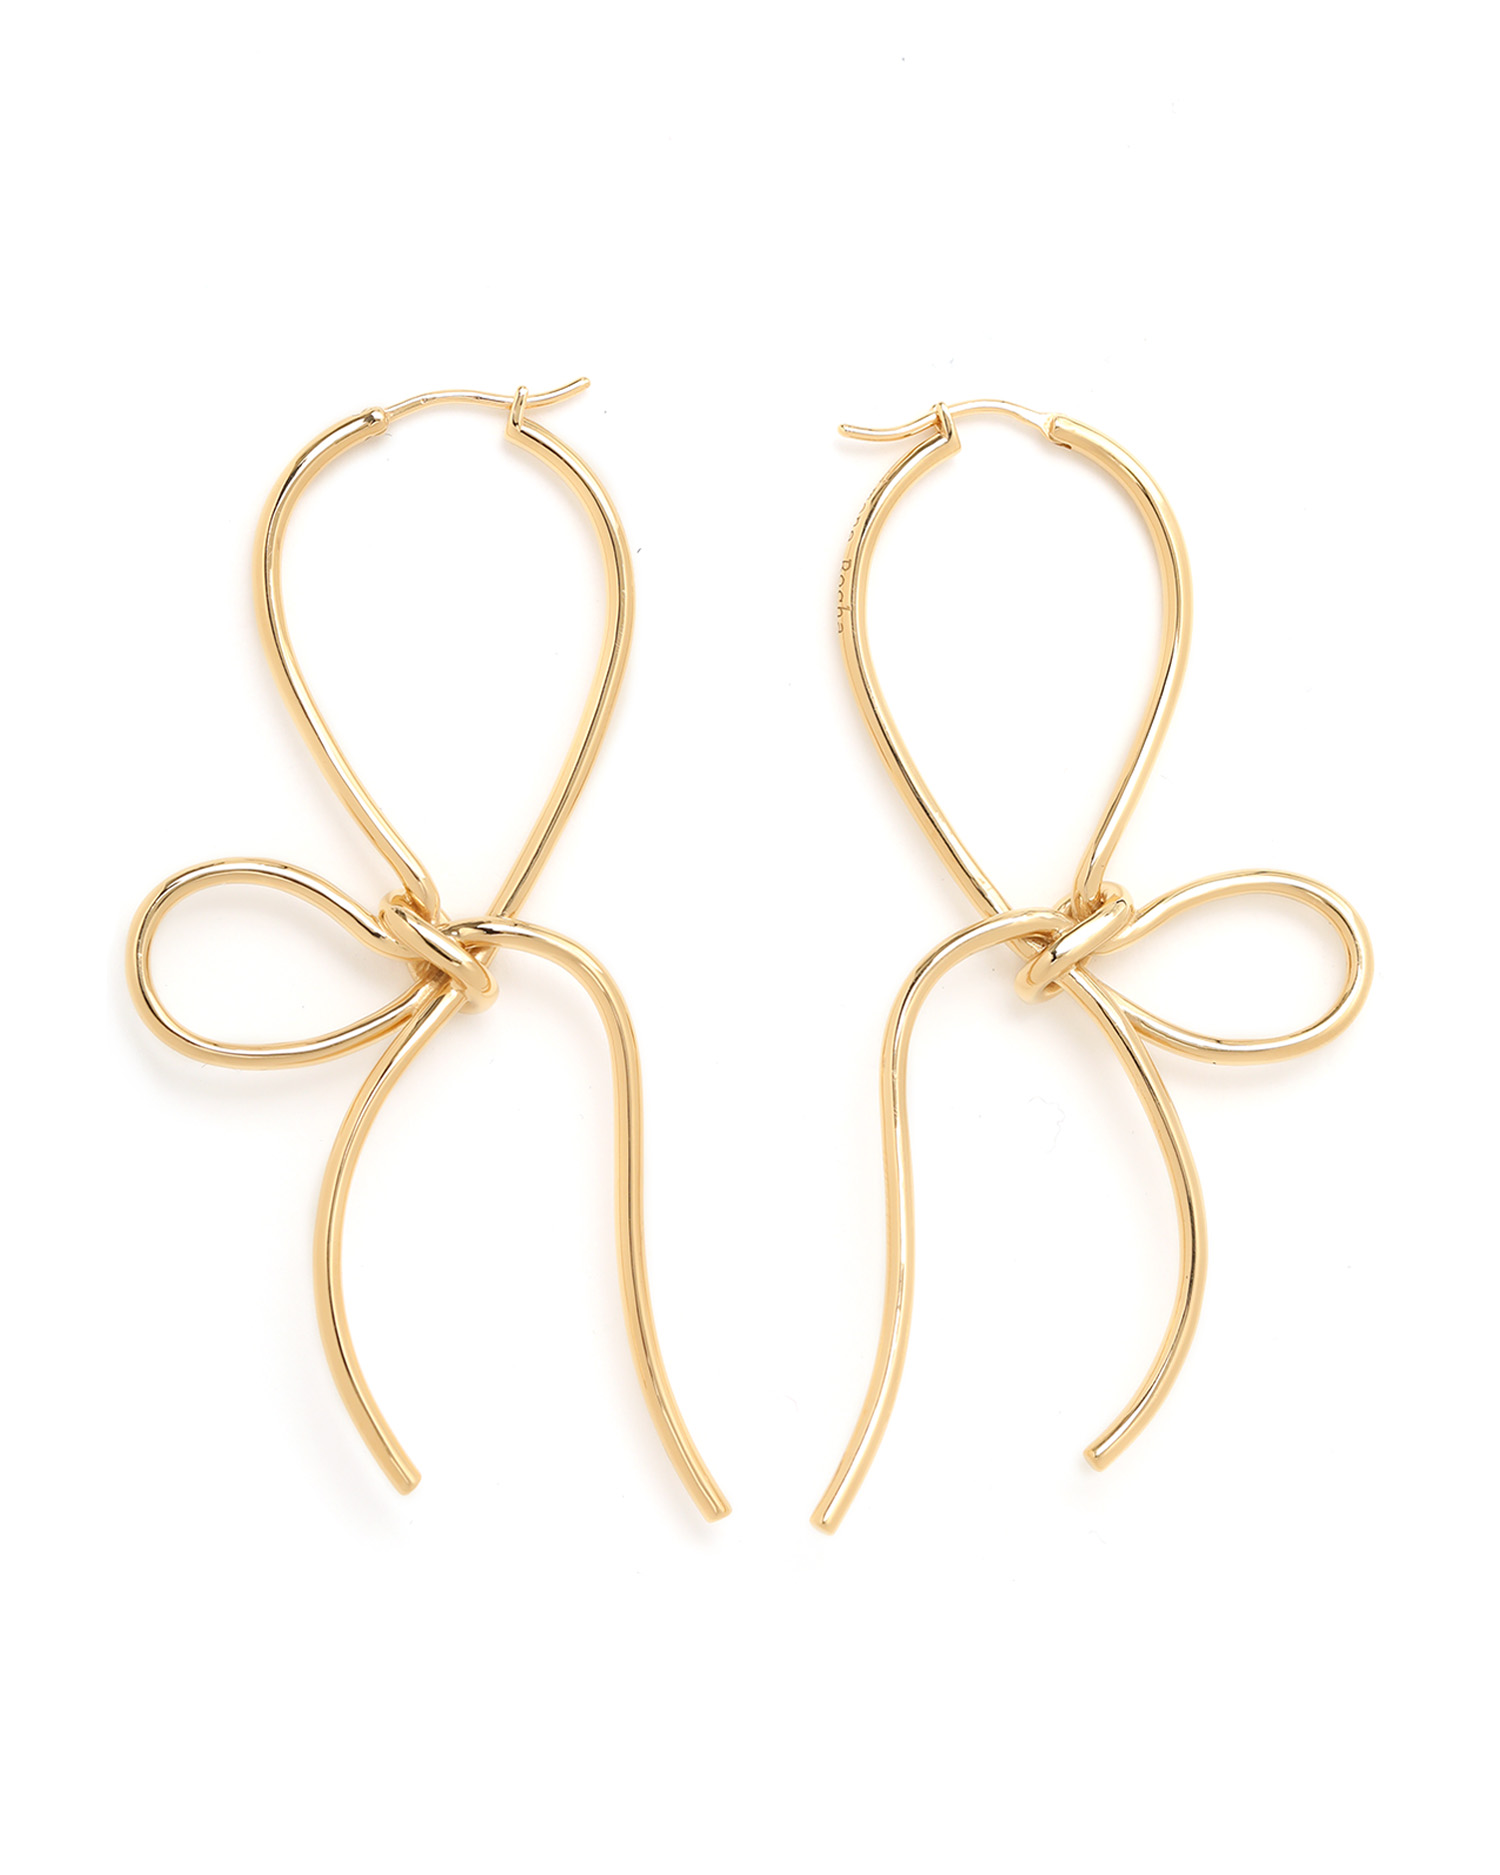 Simone Rocha Bow gold-plated earrings kbxVykn3